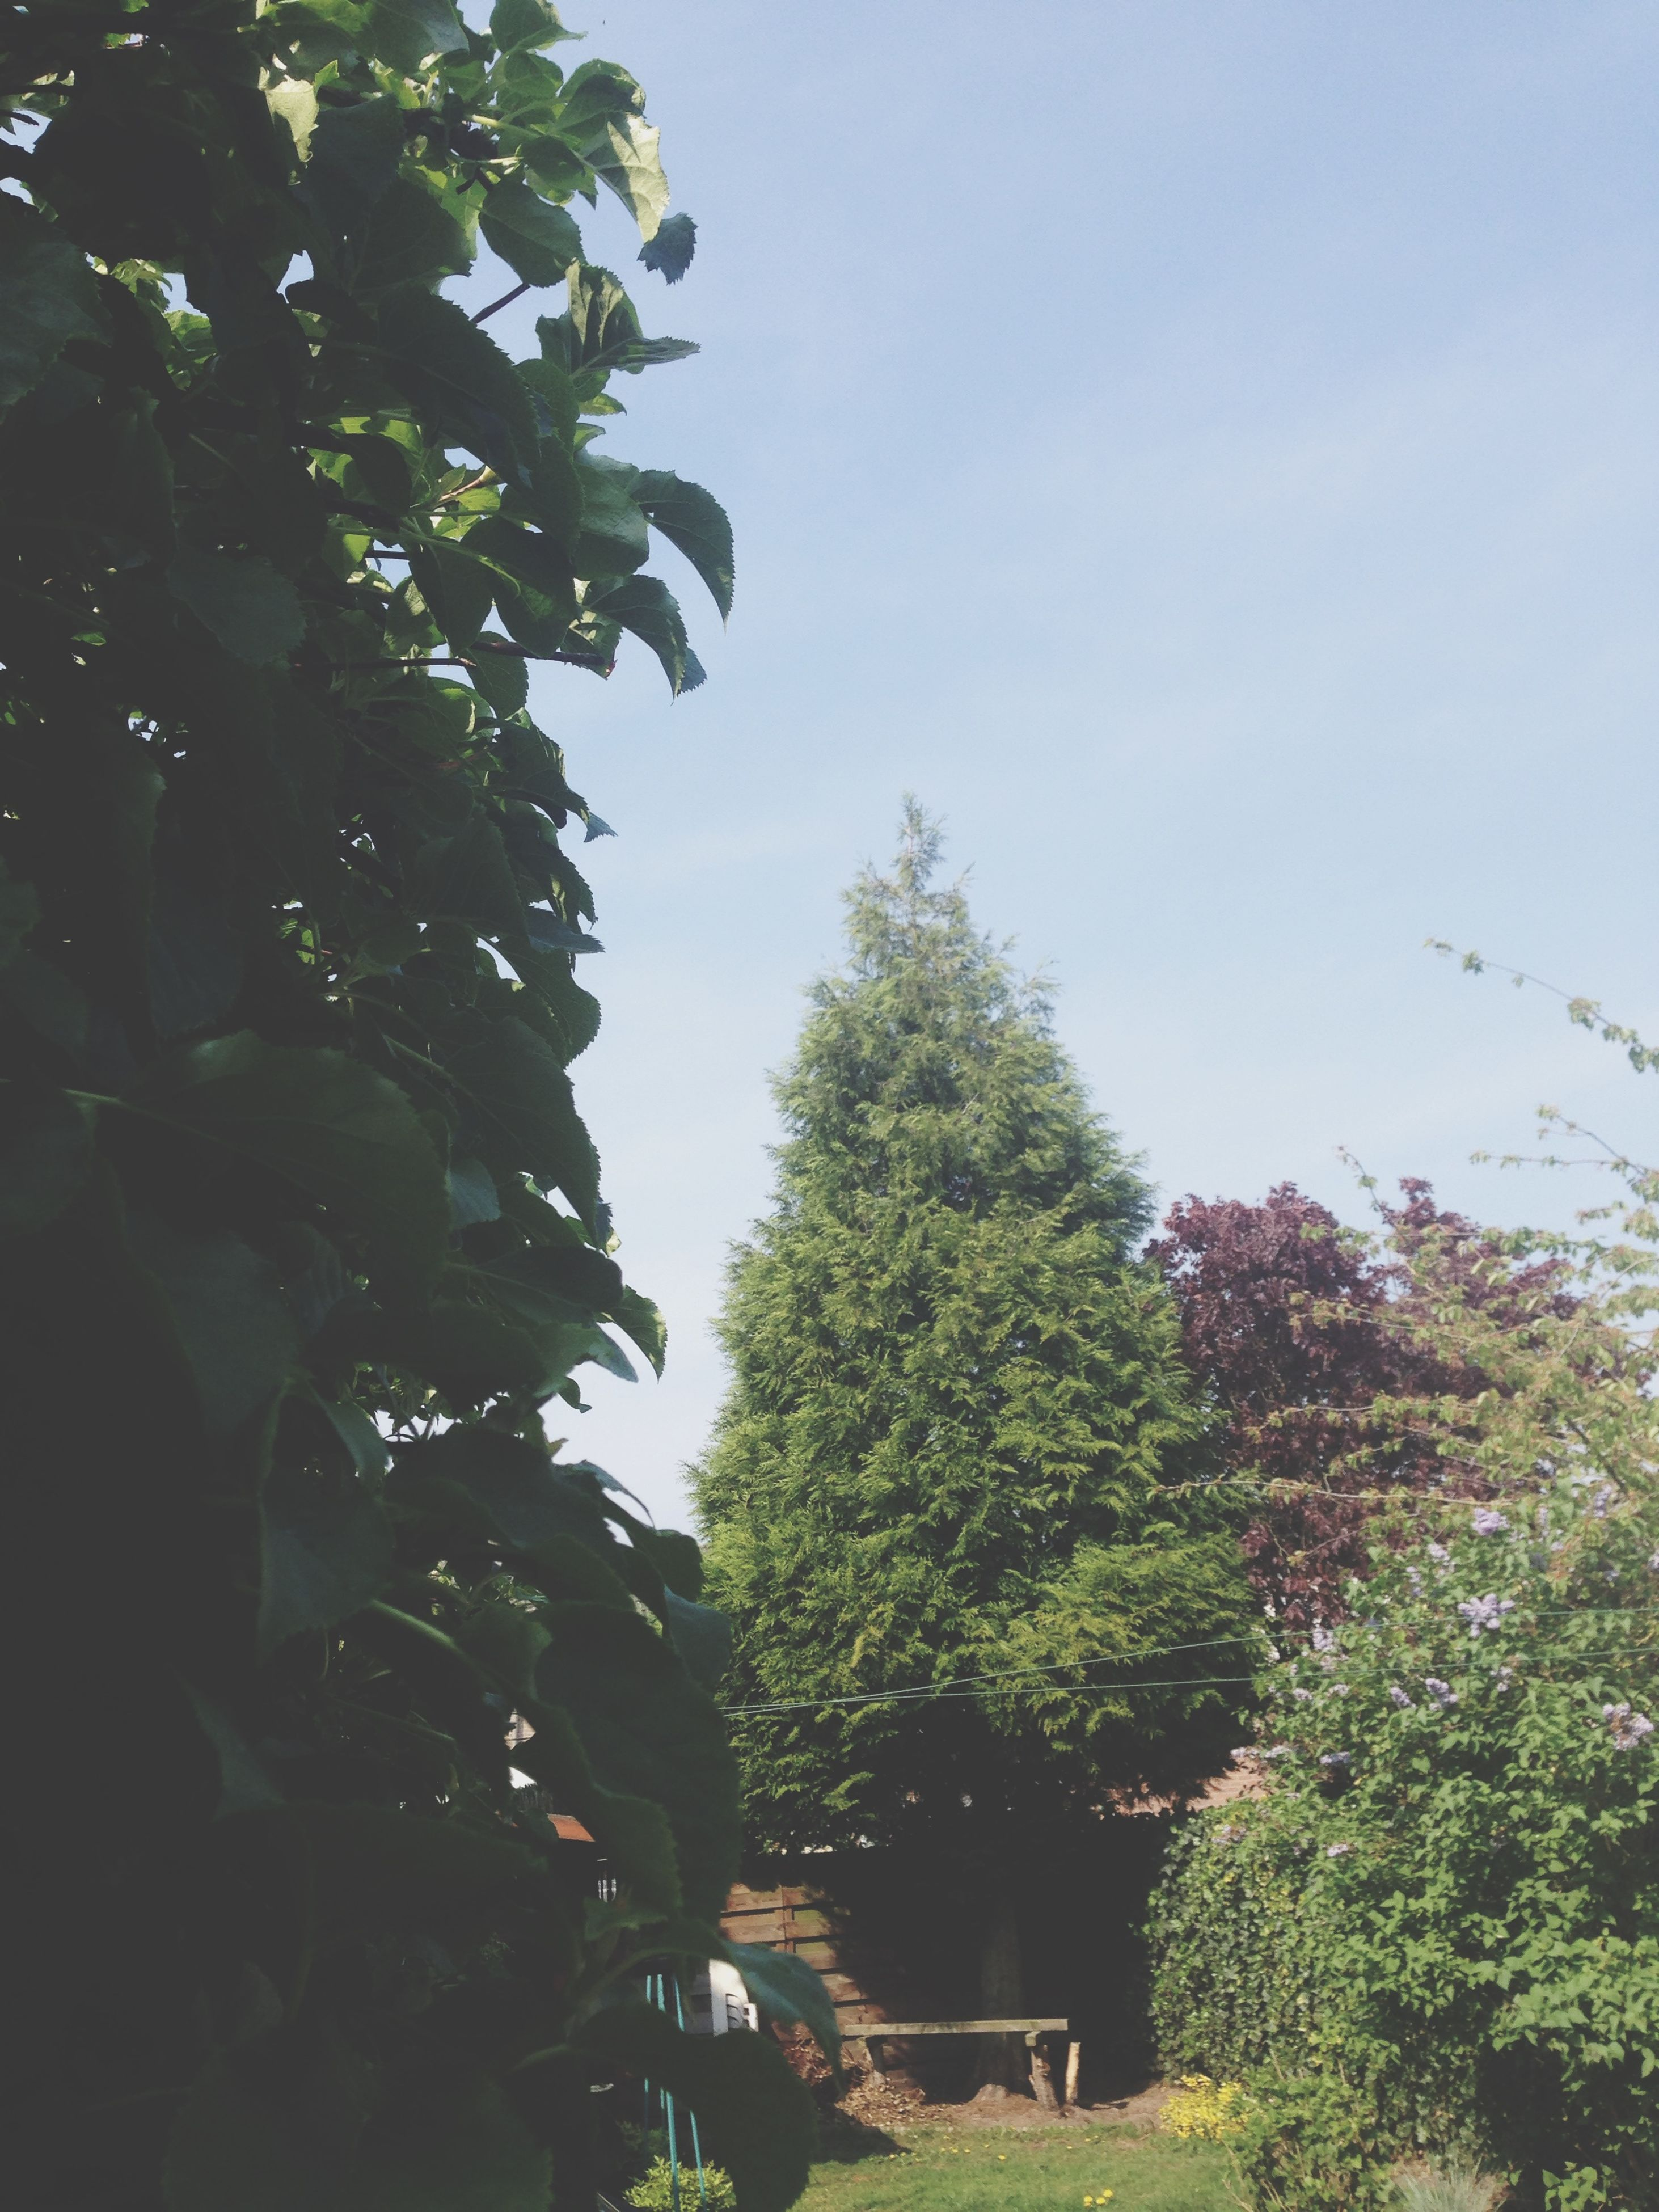 tree, clear sky, low angle view, growth, green color, leaf, branch, nature, copy space, sky, tranquility, plant, beauty in nature, day, outdoors, lush foliage, no people, built structure, green, building exterior